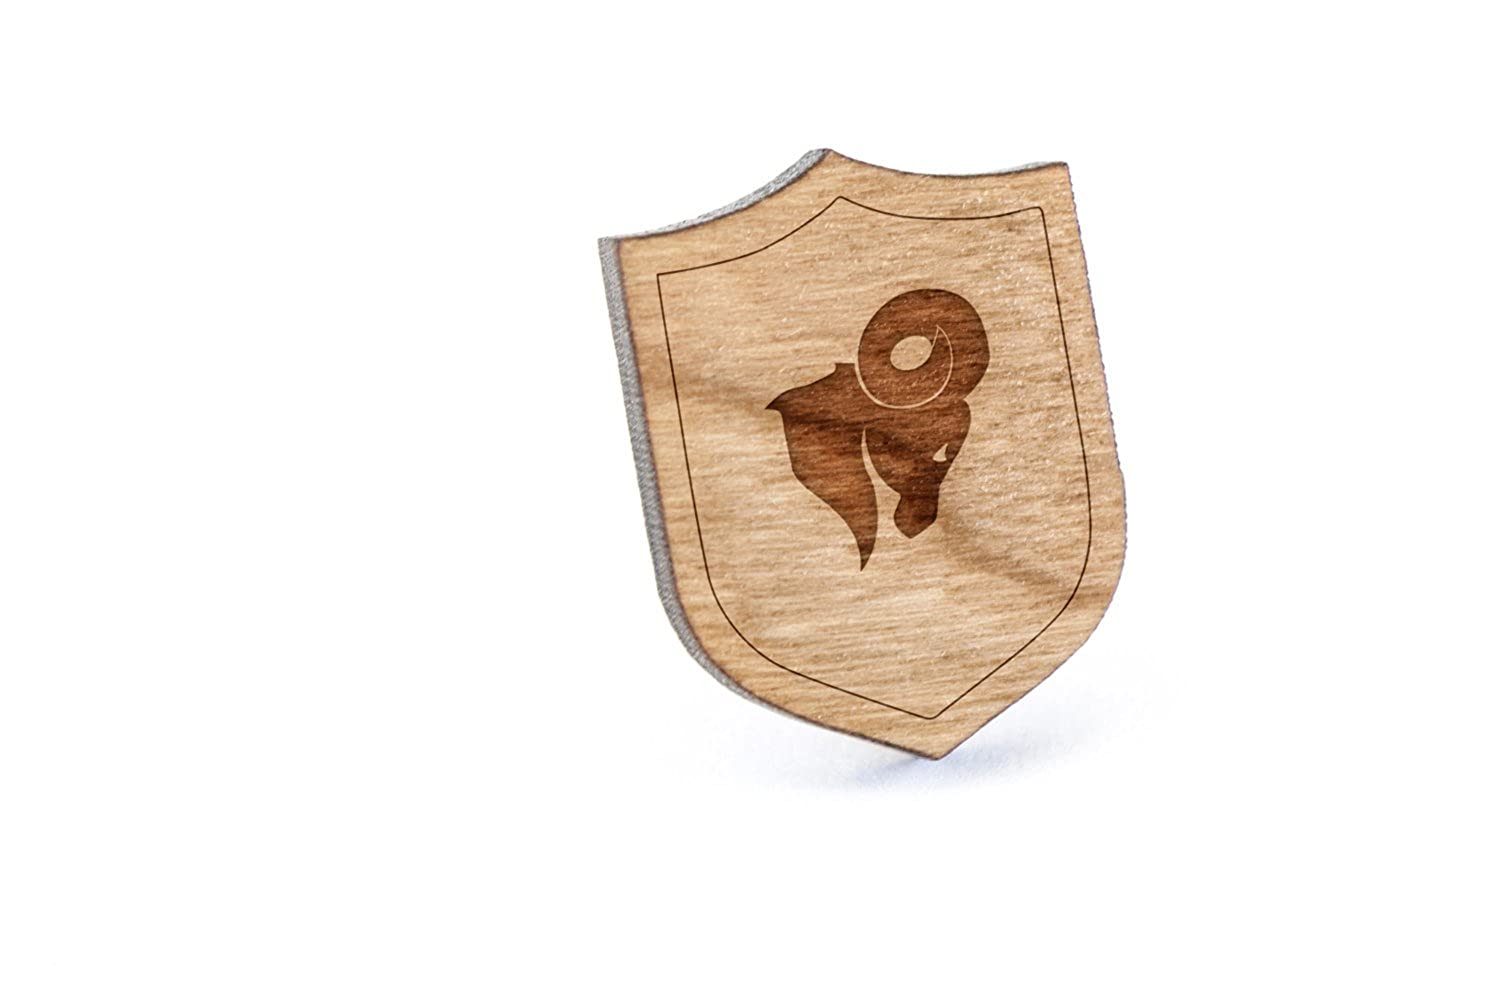 Ram Lapel Pin, Wooden Pin